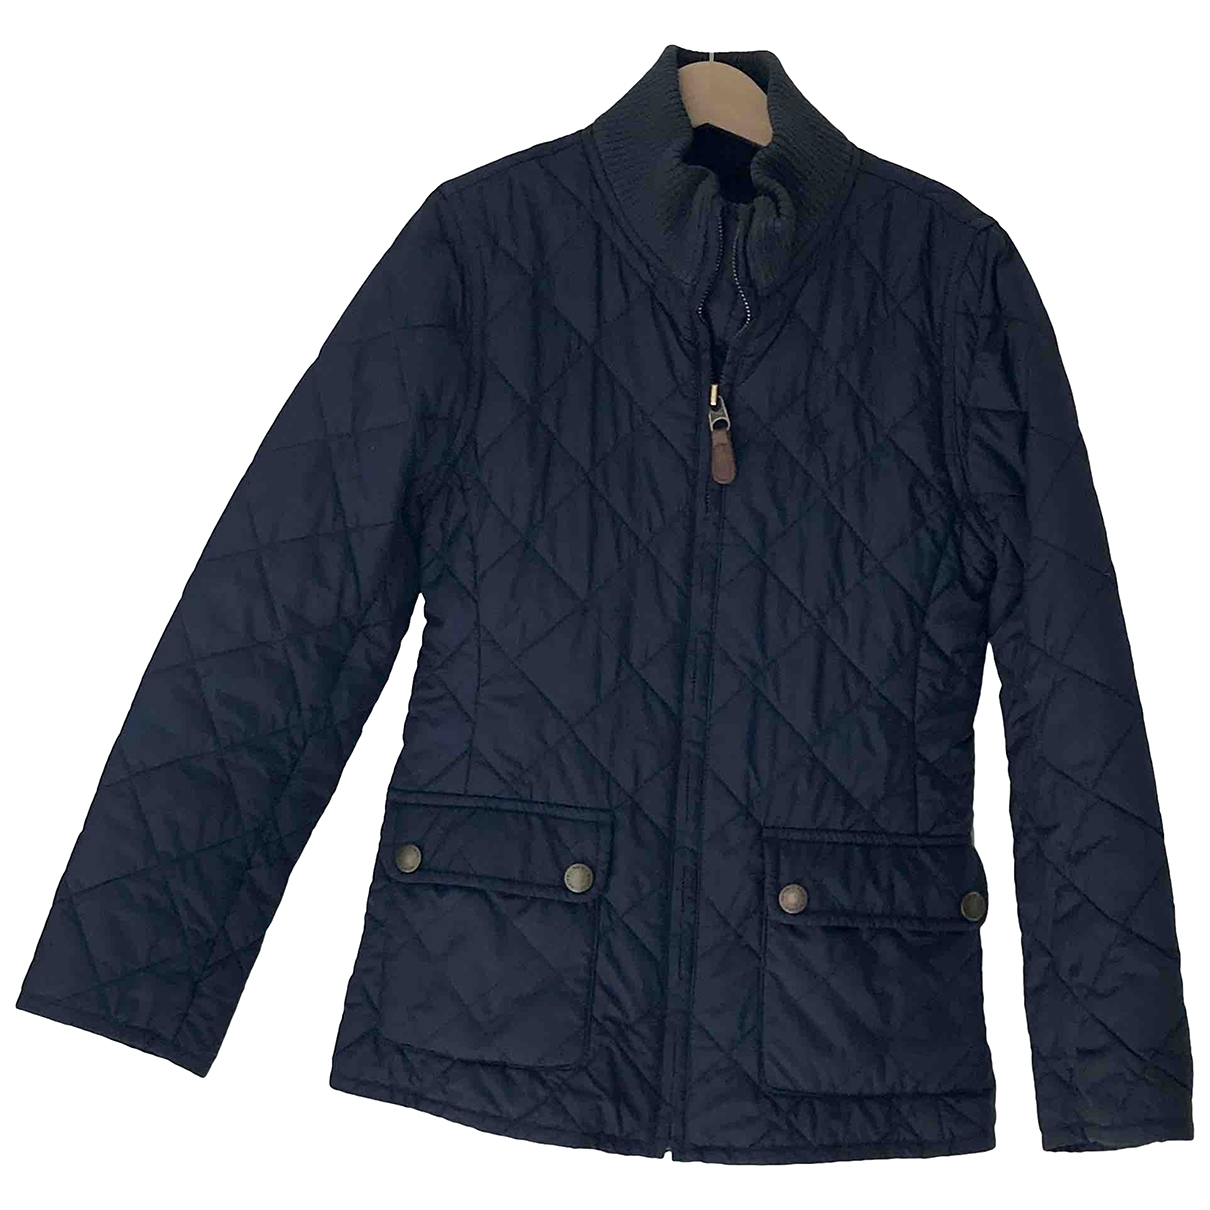 Polo Ralph Lauren \N Blue jacket & coat for Kids 8 years - until 50 inches UK